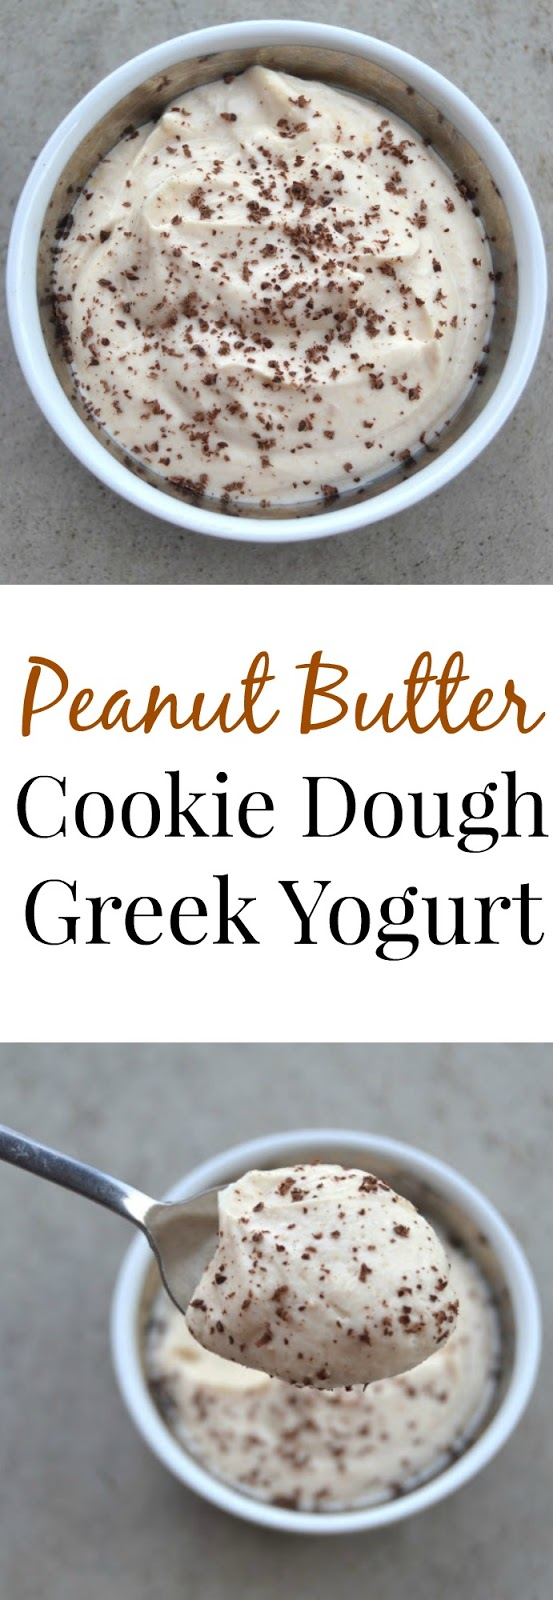 Peanut Butter Cookie Dough Greek Yogurt- takes 2 minutes to make, tastes like dessert and is healthy! www.nutritionistreviews.com